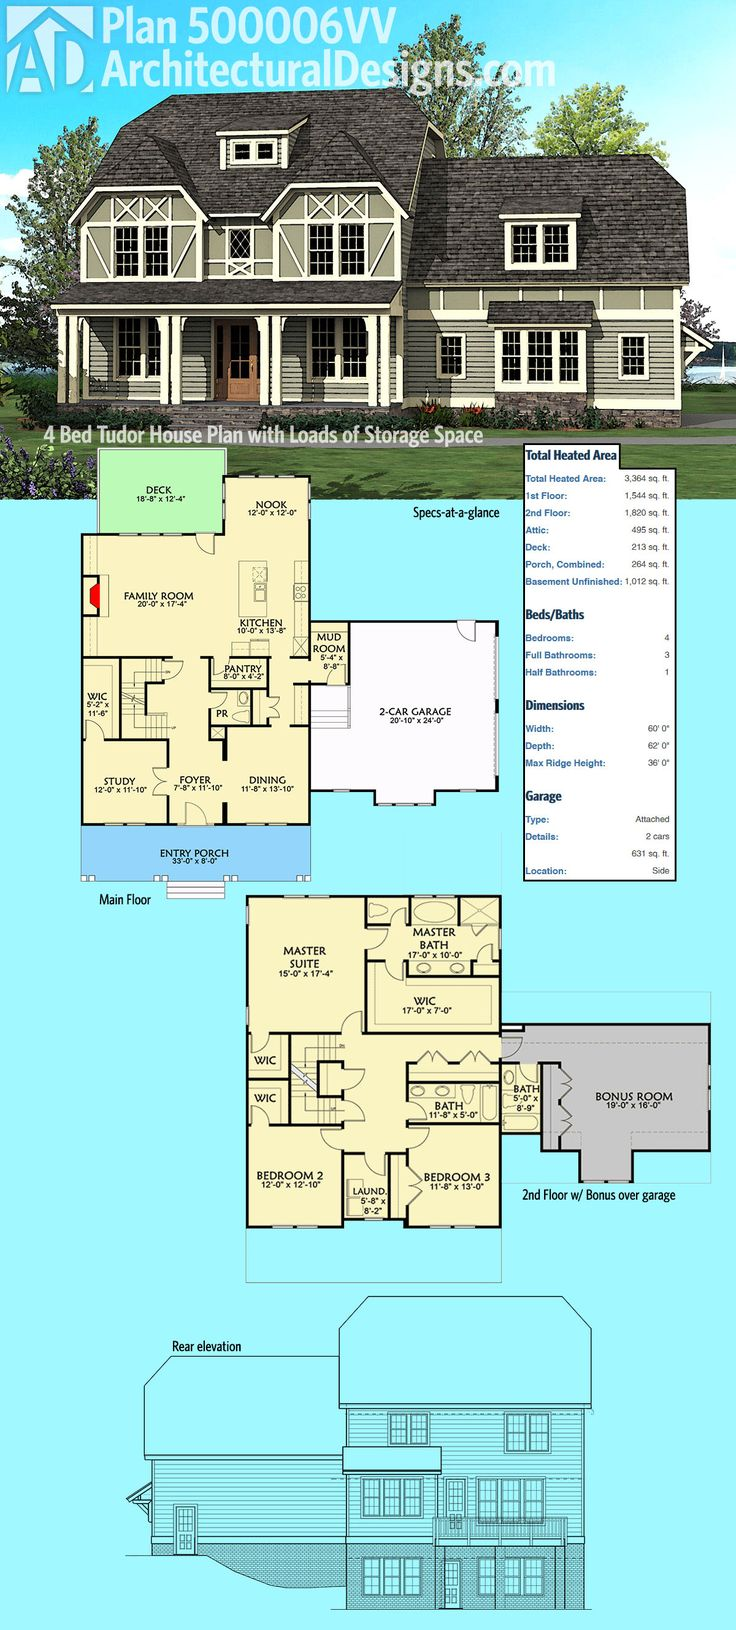 Architectural Designs Craftsman House Plan 500006VV has a sturdy front porch with stone and timbers. Inside you get 4 to 5 beds, a main floor game room and a bonus room over the garage. Over 3,200 square feet of heated living space. Ready when you are. Where do YOU want to build?